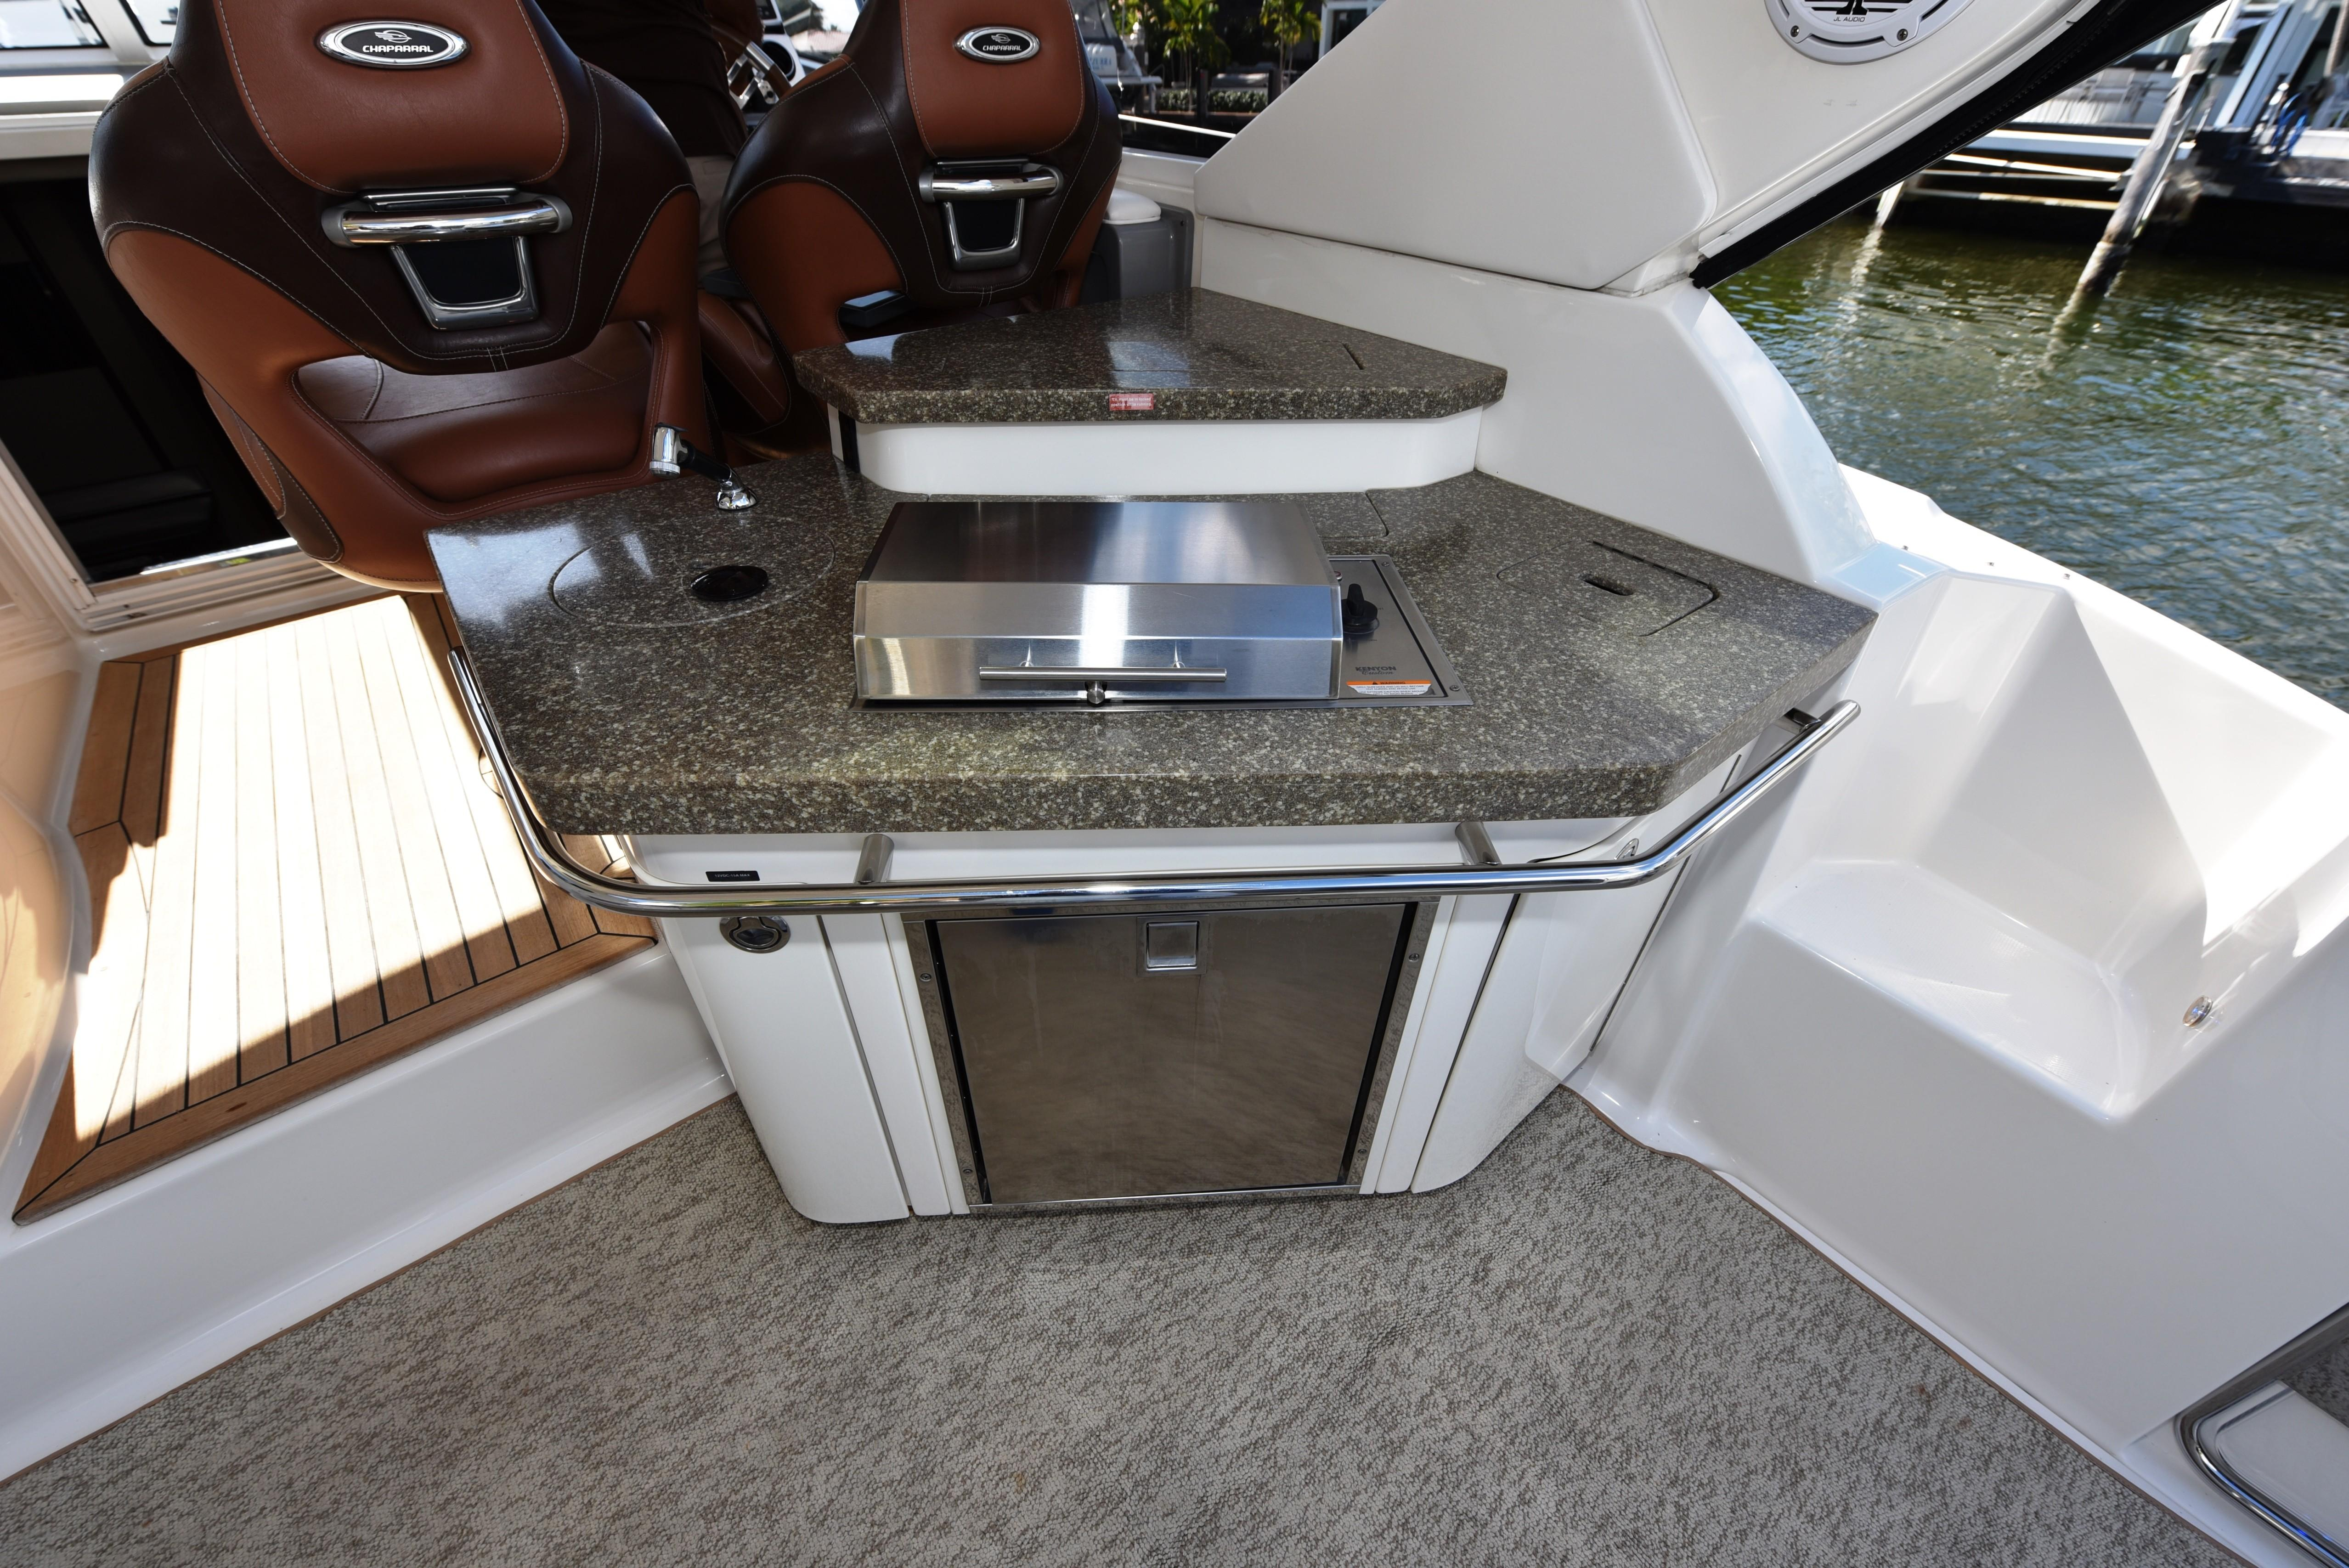 2010 Chaparral 400 Premier - Wet bar